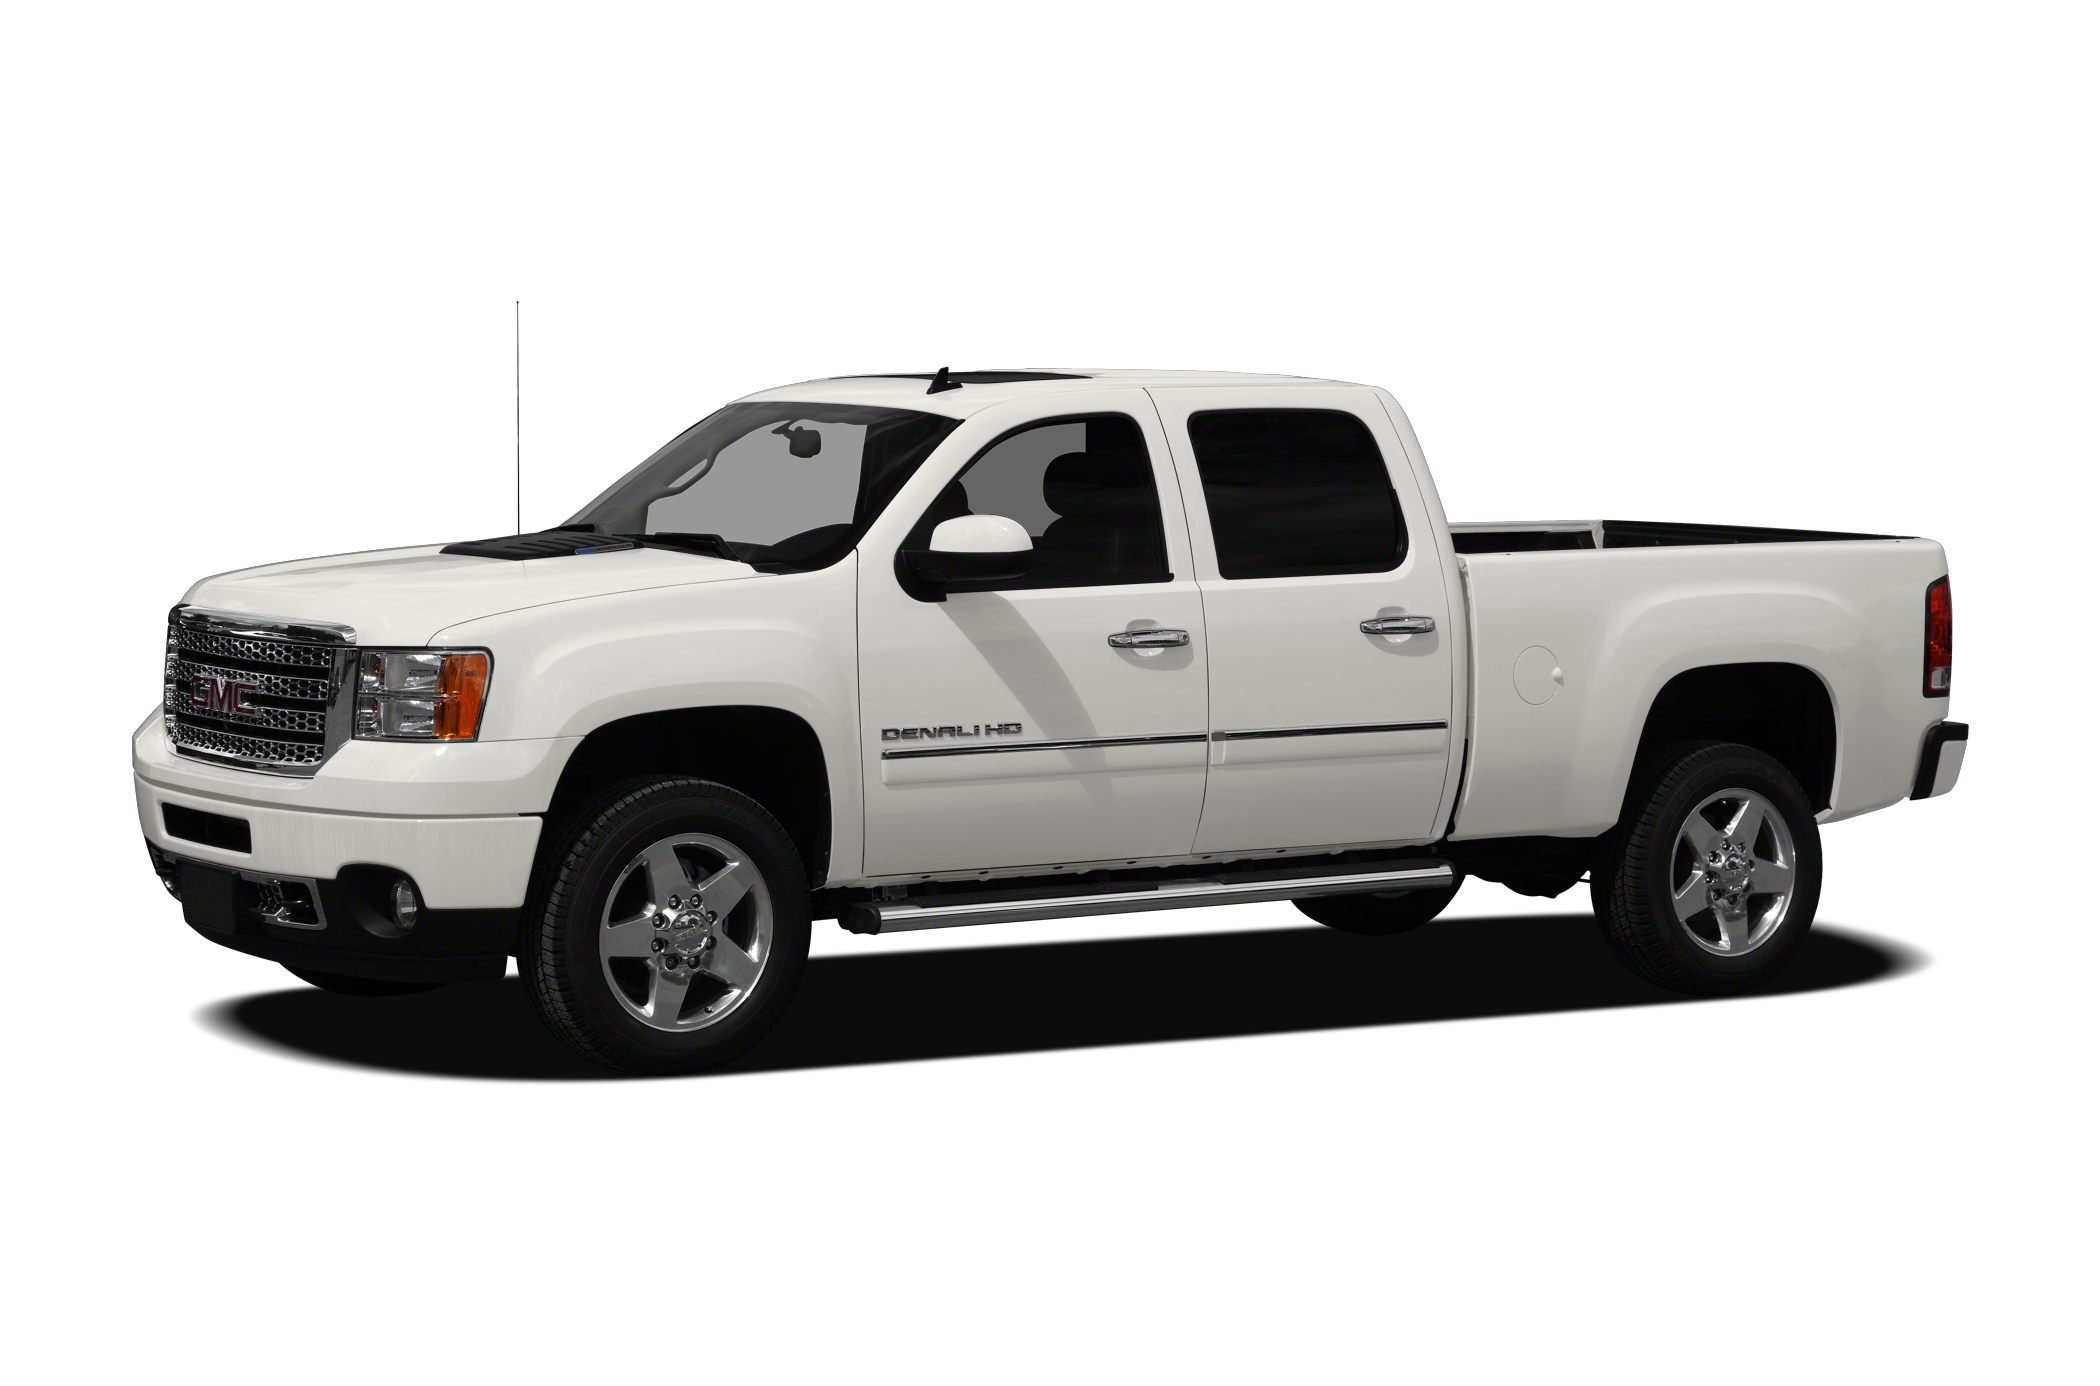 2012 GMC Sierra 2500 Denali Crew Cab Pickup for sale in Indianola for $38,995 with 82,198 miles.